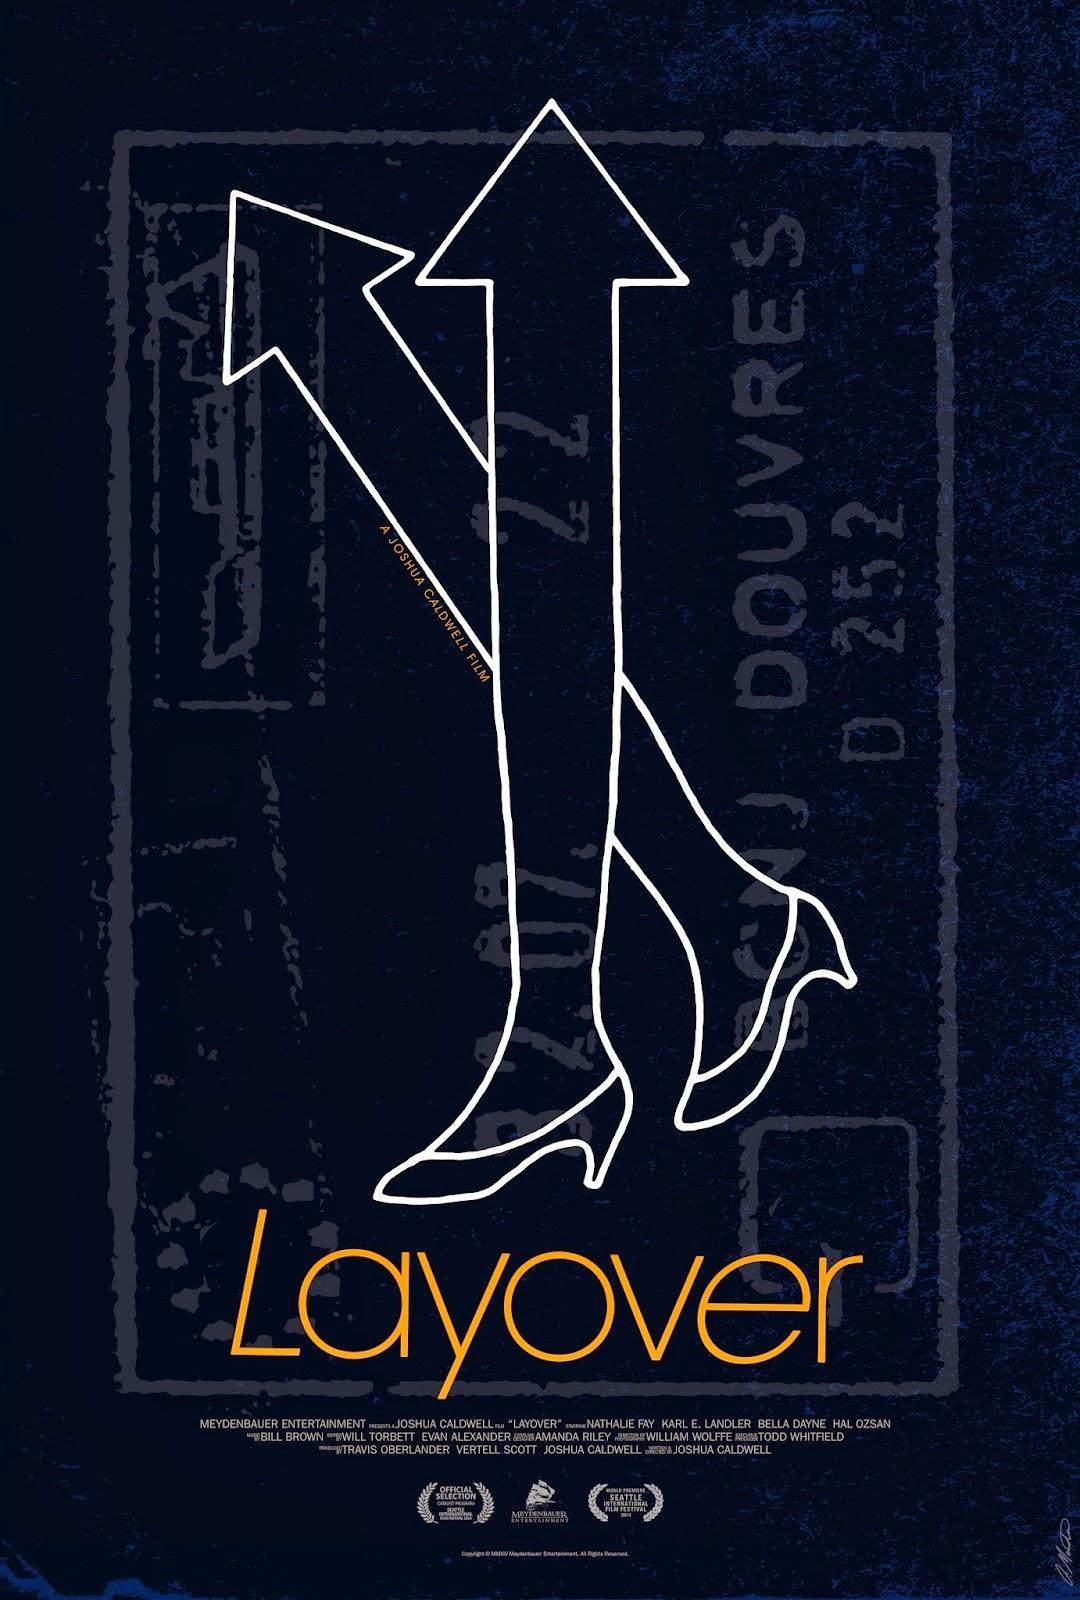 Layover poster art